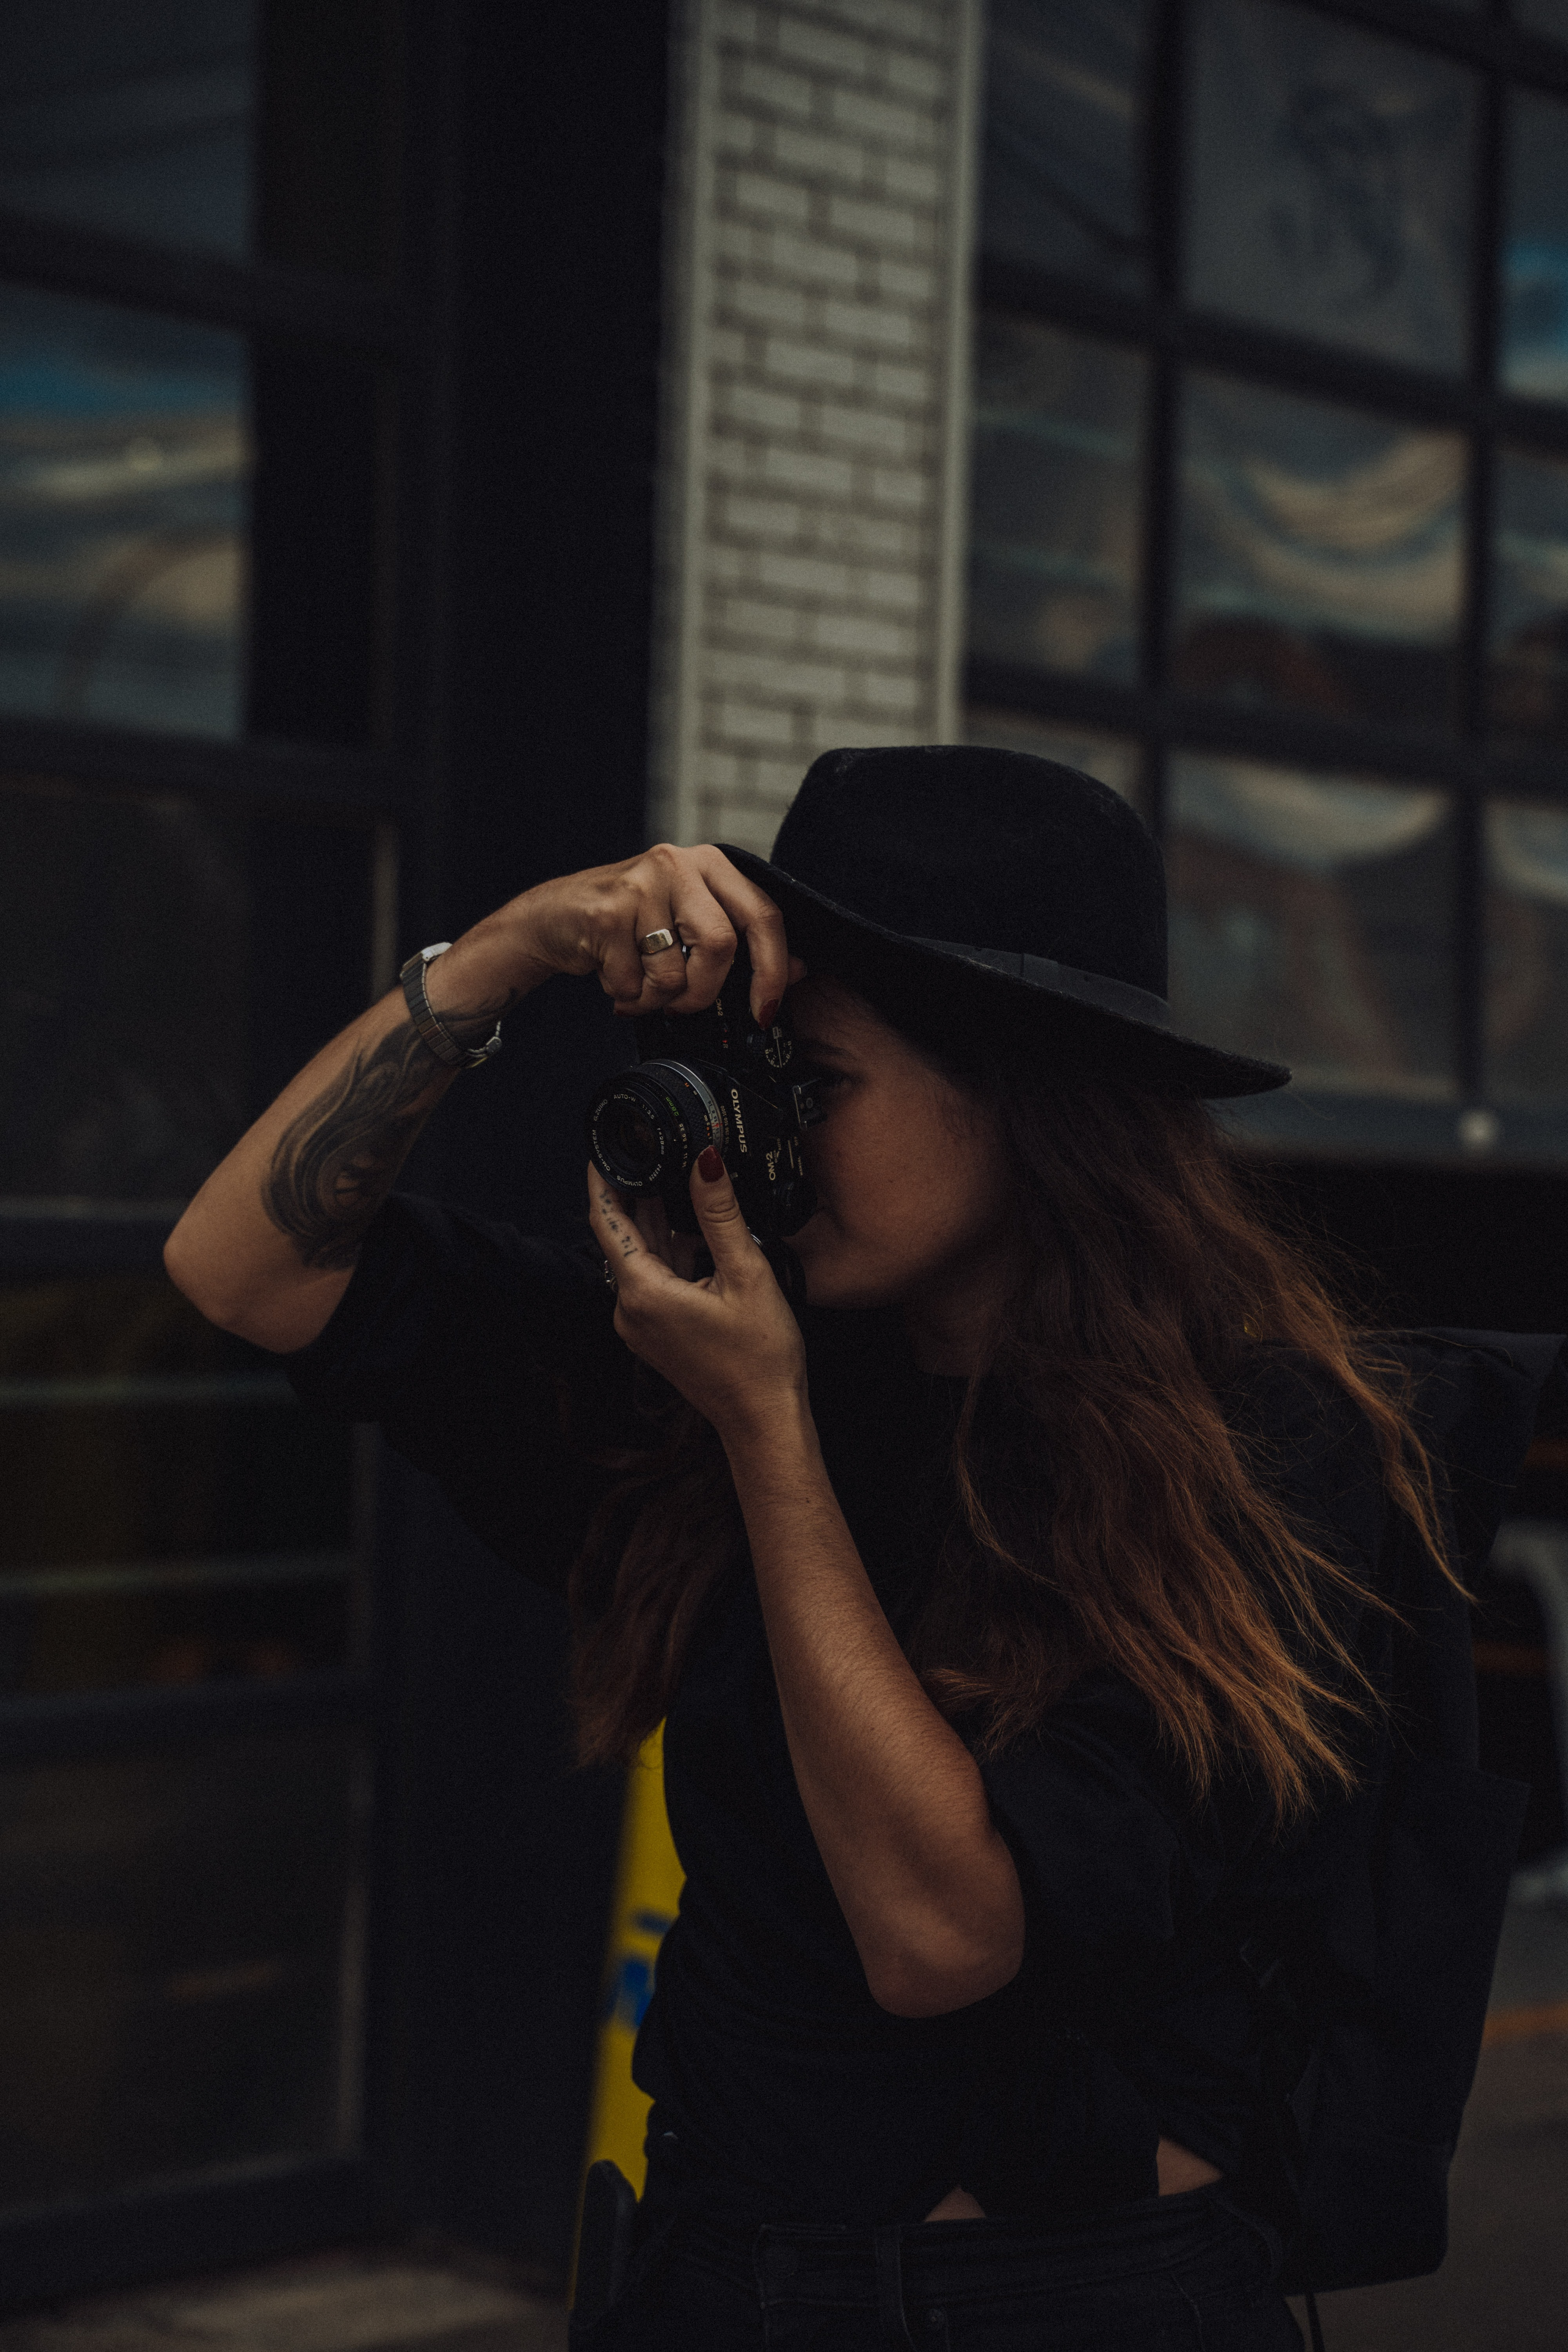 121636 Screensavers and Wallpapers Camera for phone. Download Miscellanea, Miscellaneous, Girl, Camera, Hat, Photographer, Tattoo pictures for free